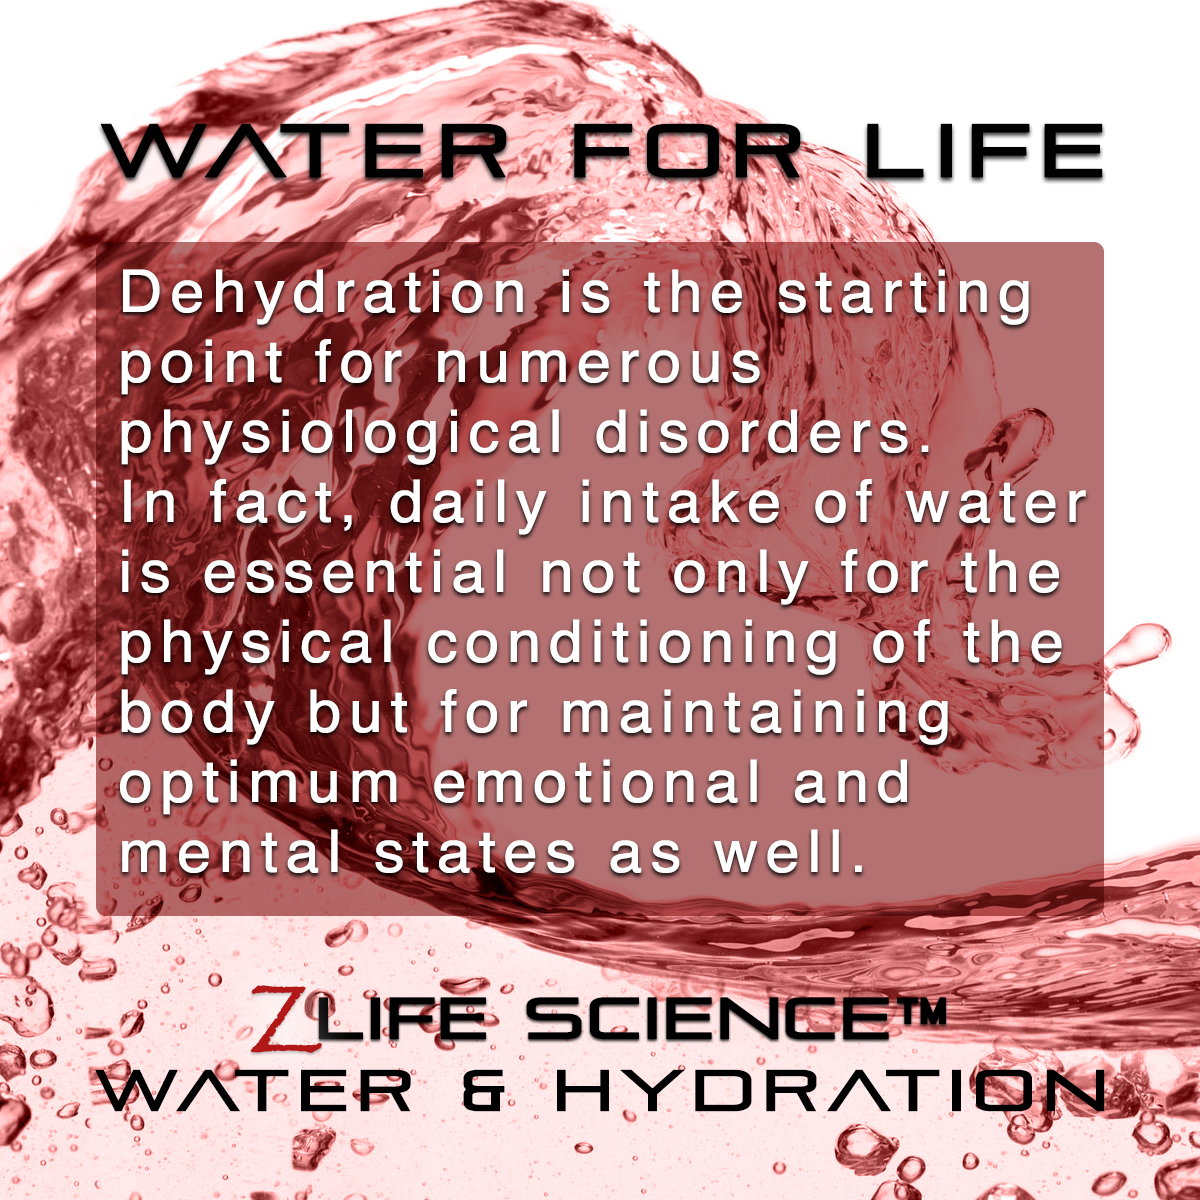 Waterfor Life card3